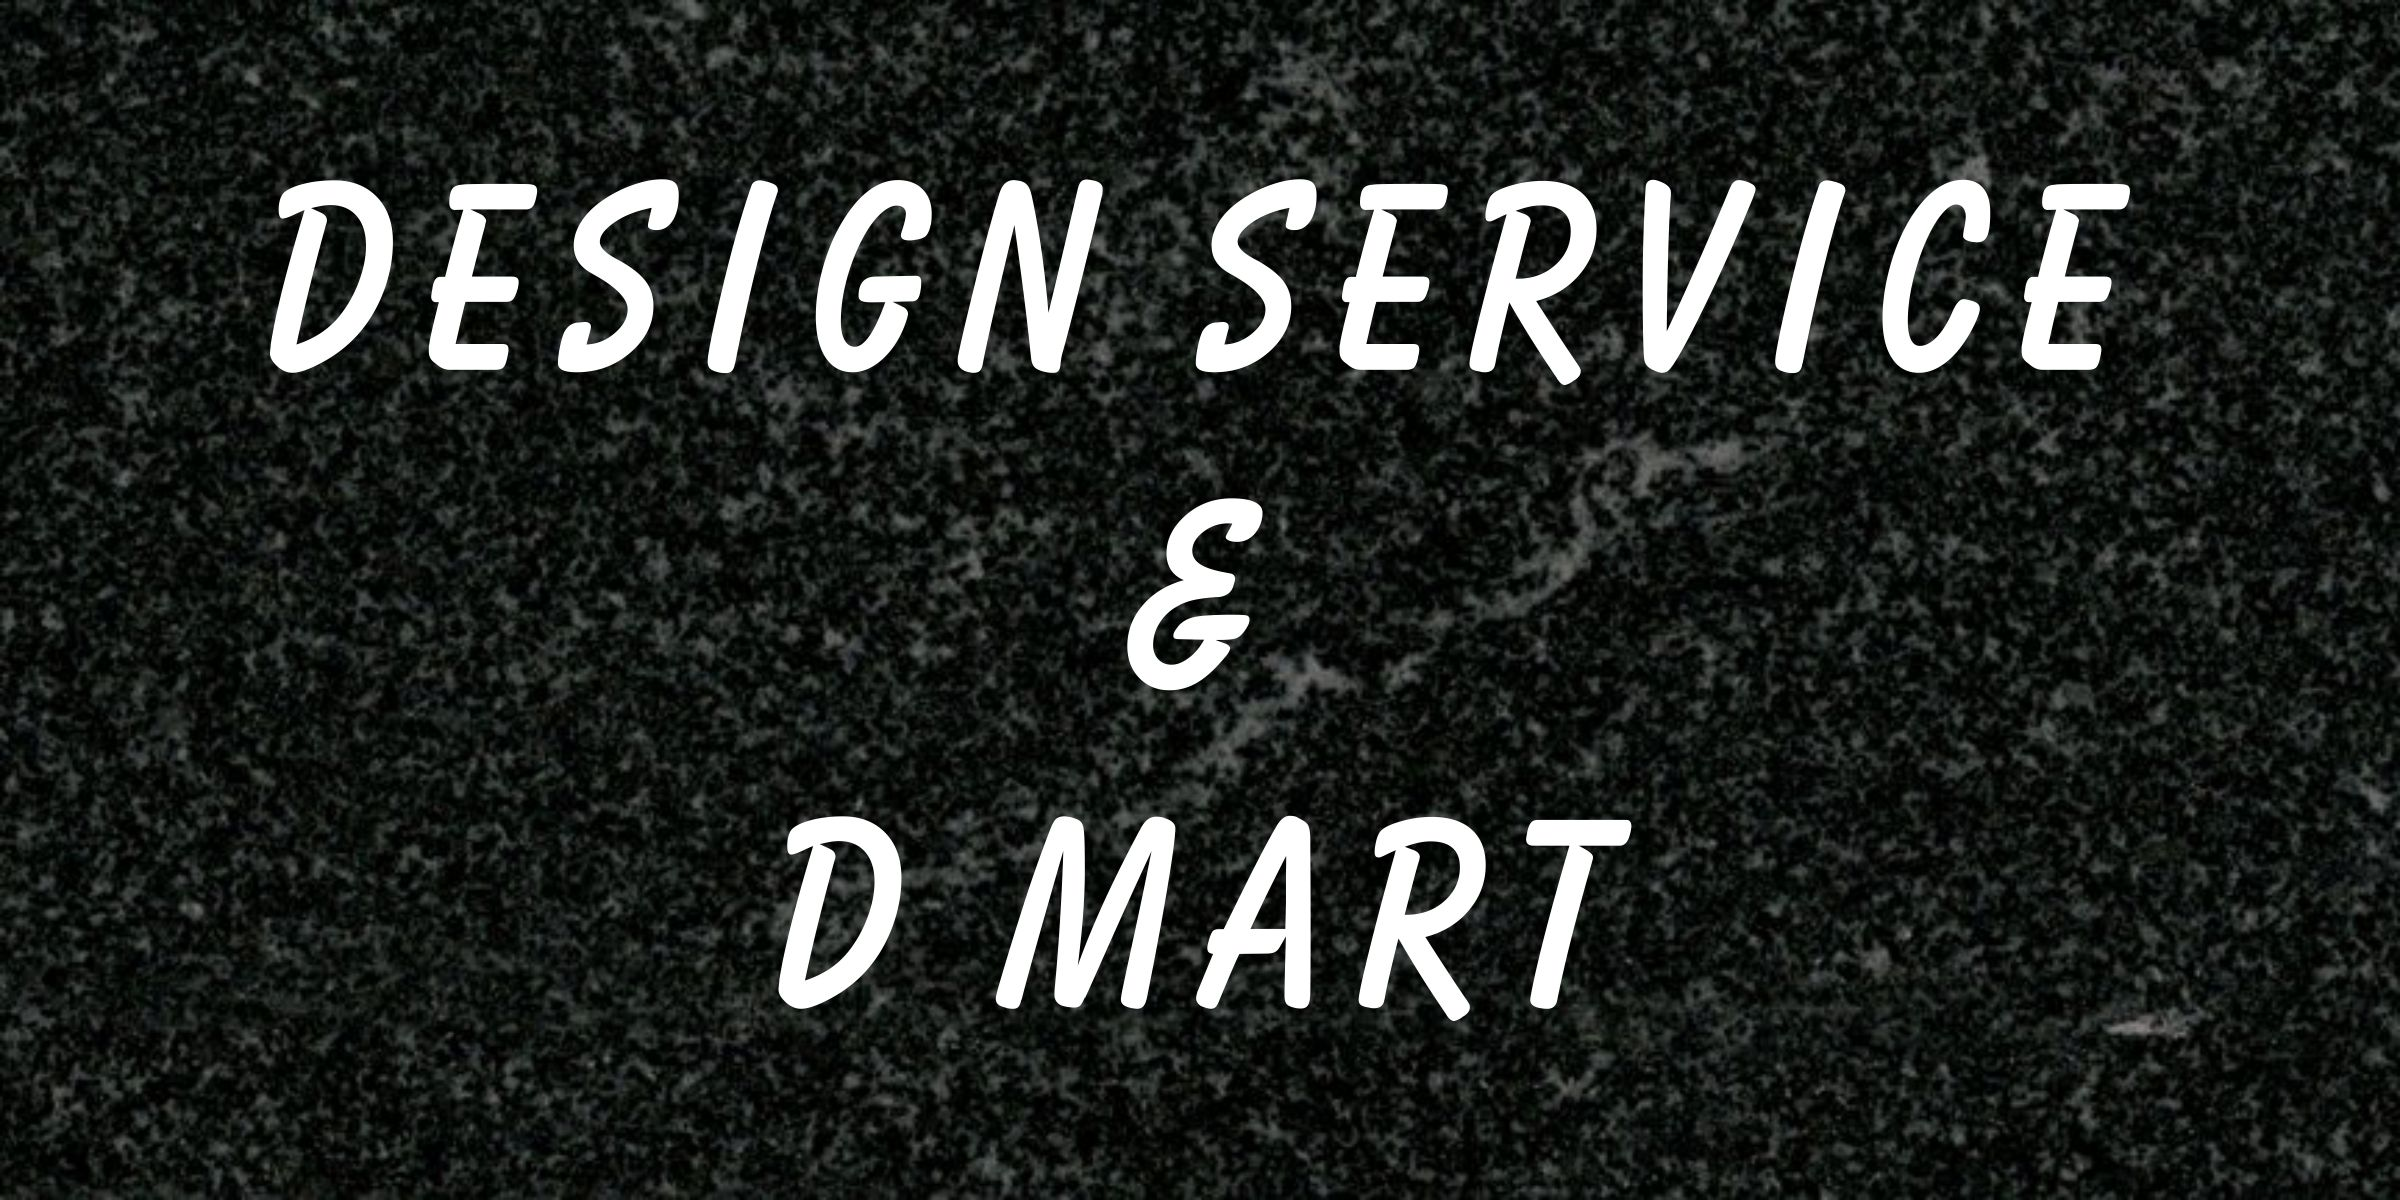 Design Service and D Mart